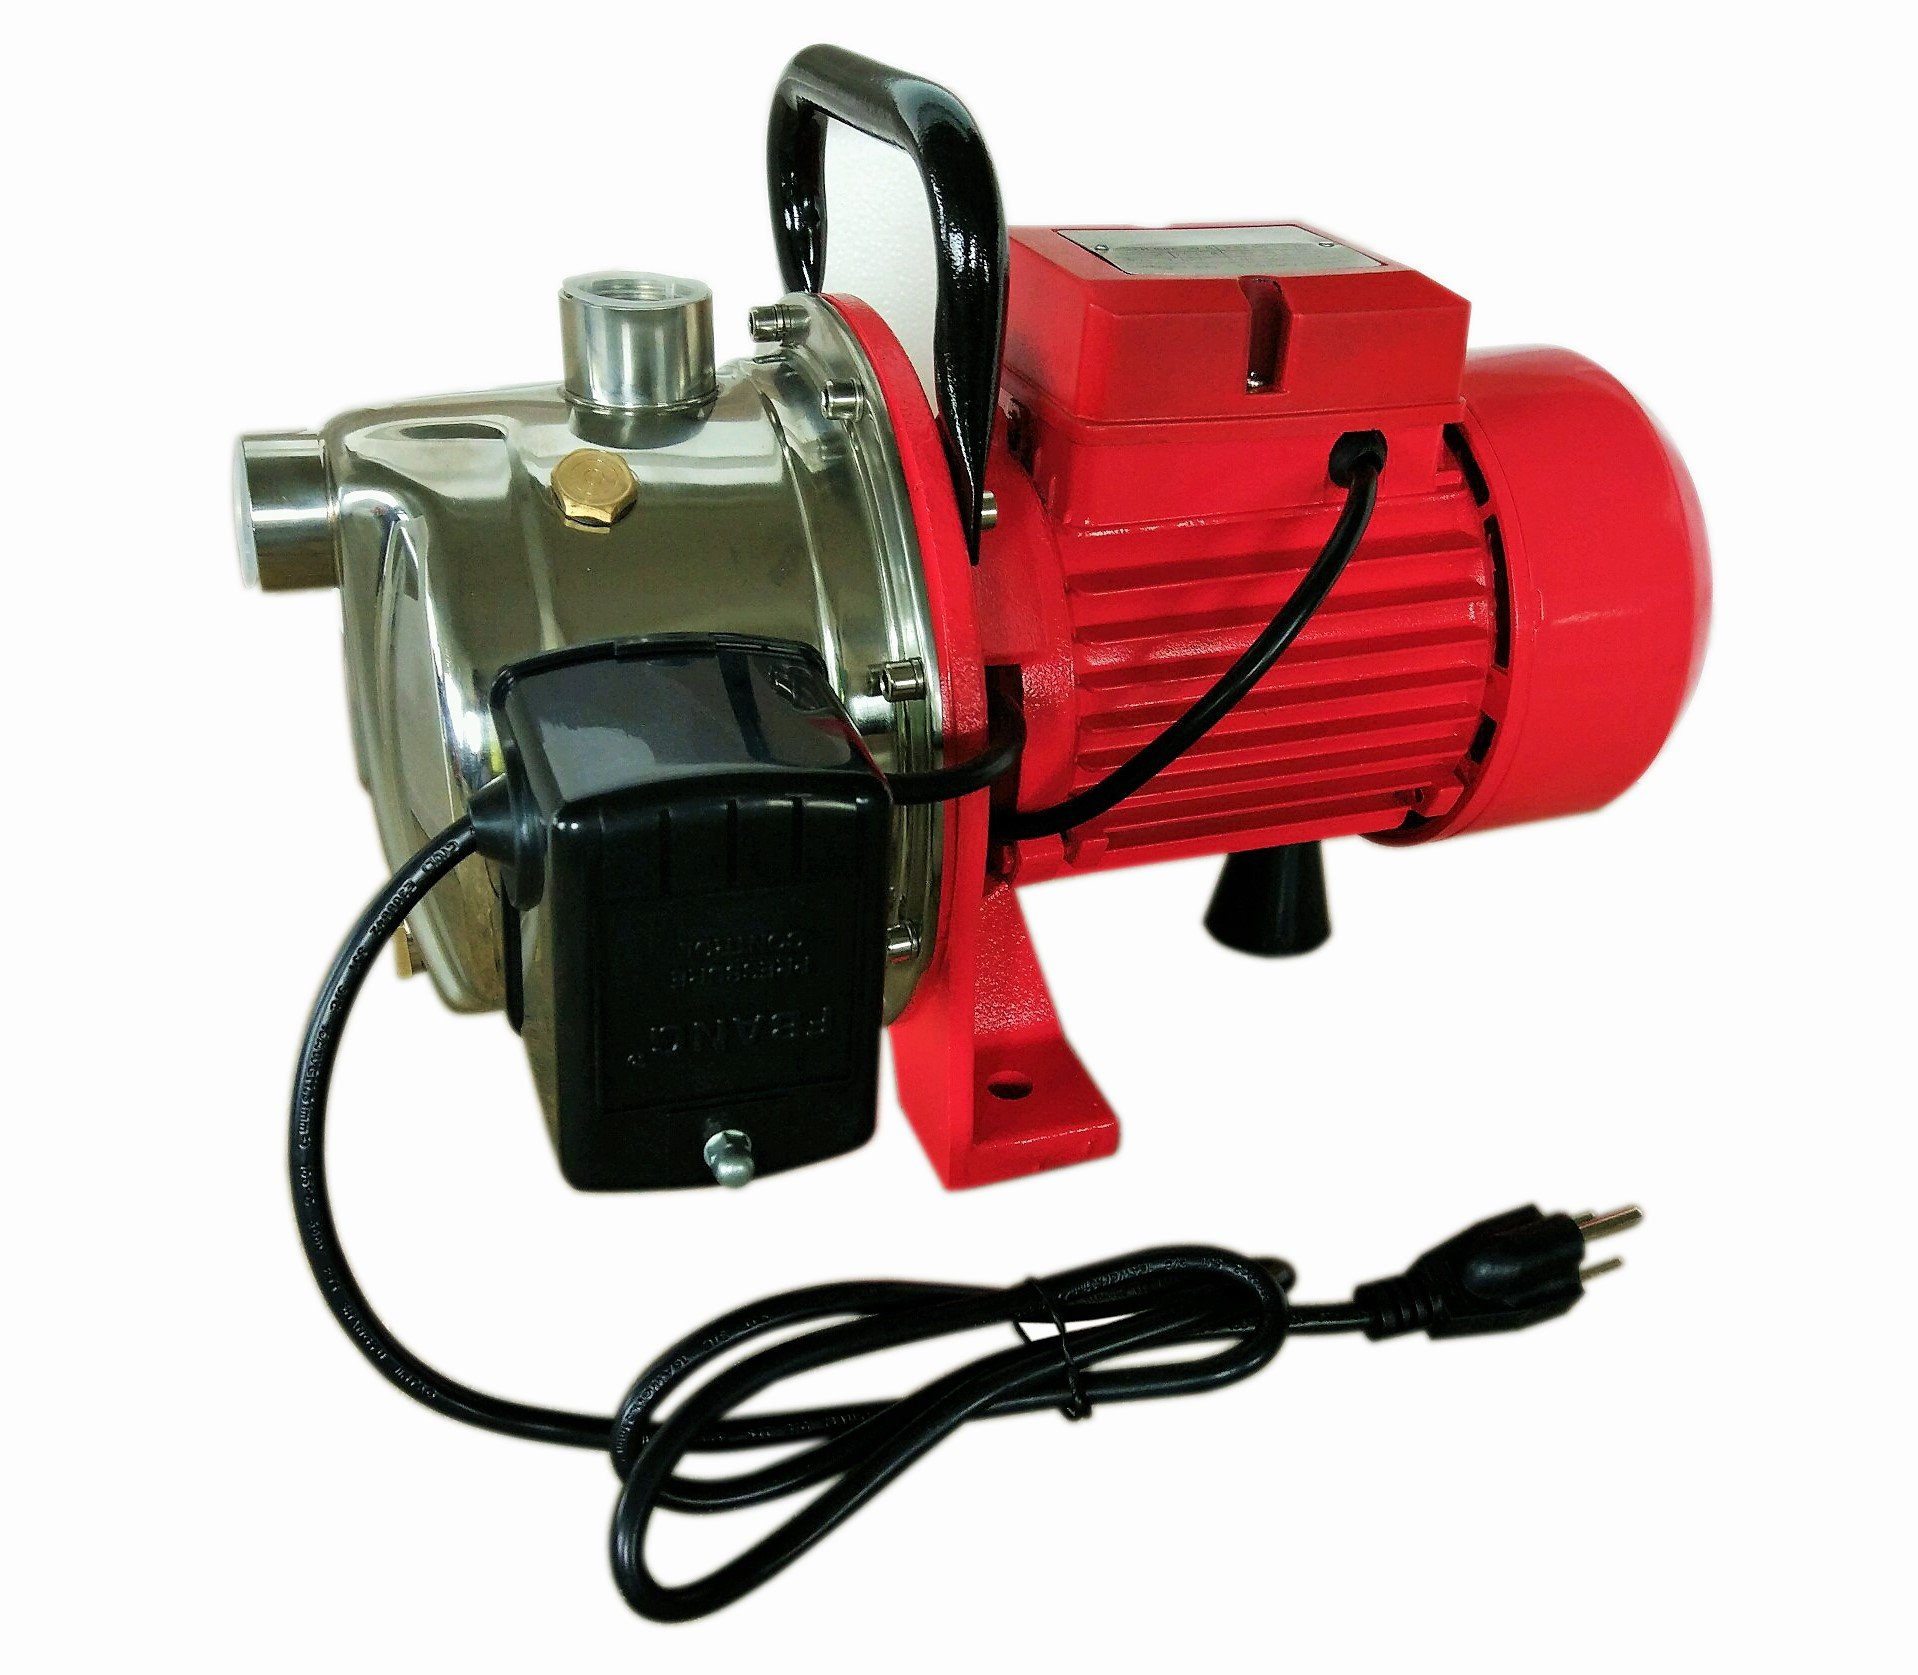 Hallmark Industries MA0438X-9 Jet Pump with Pressure Switch, 18 gpm, Stainless Steel, Self Priming, 1 hp, 115/230V, Head 30' In/164' Out by Hallmark Industries